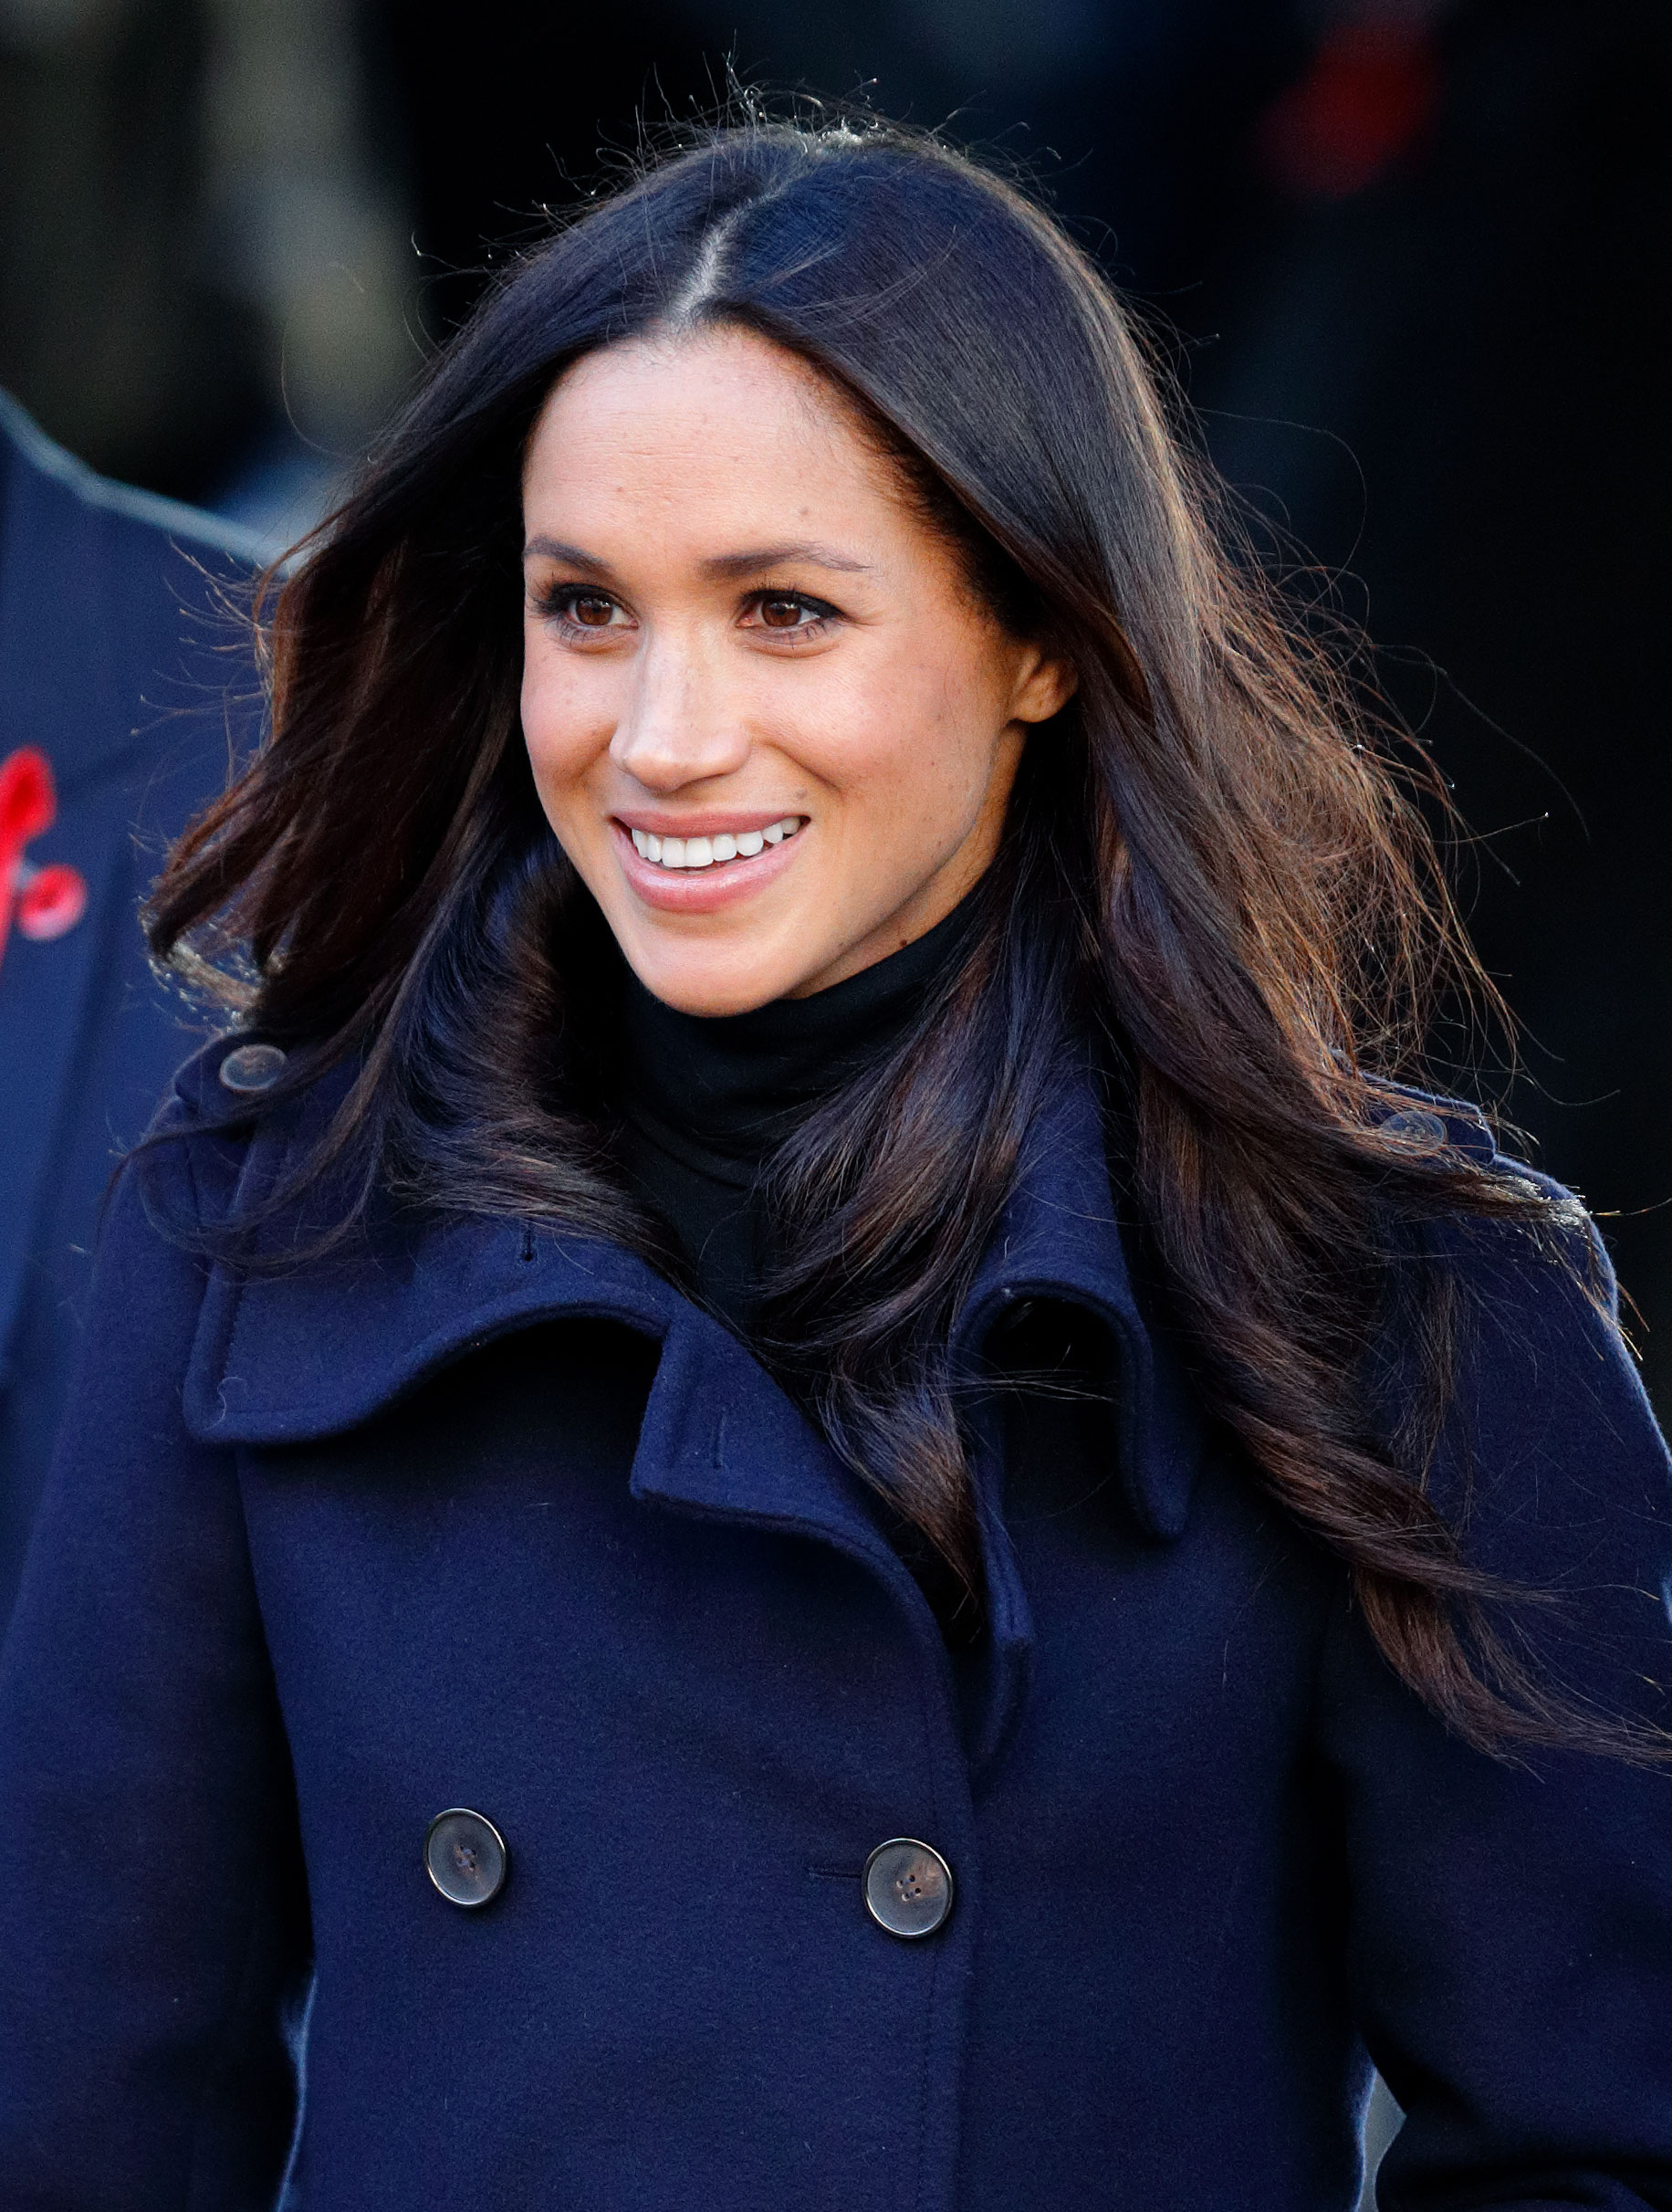 How Meghan Markle Gets Her Signature Blowout in 5 Easy Steps